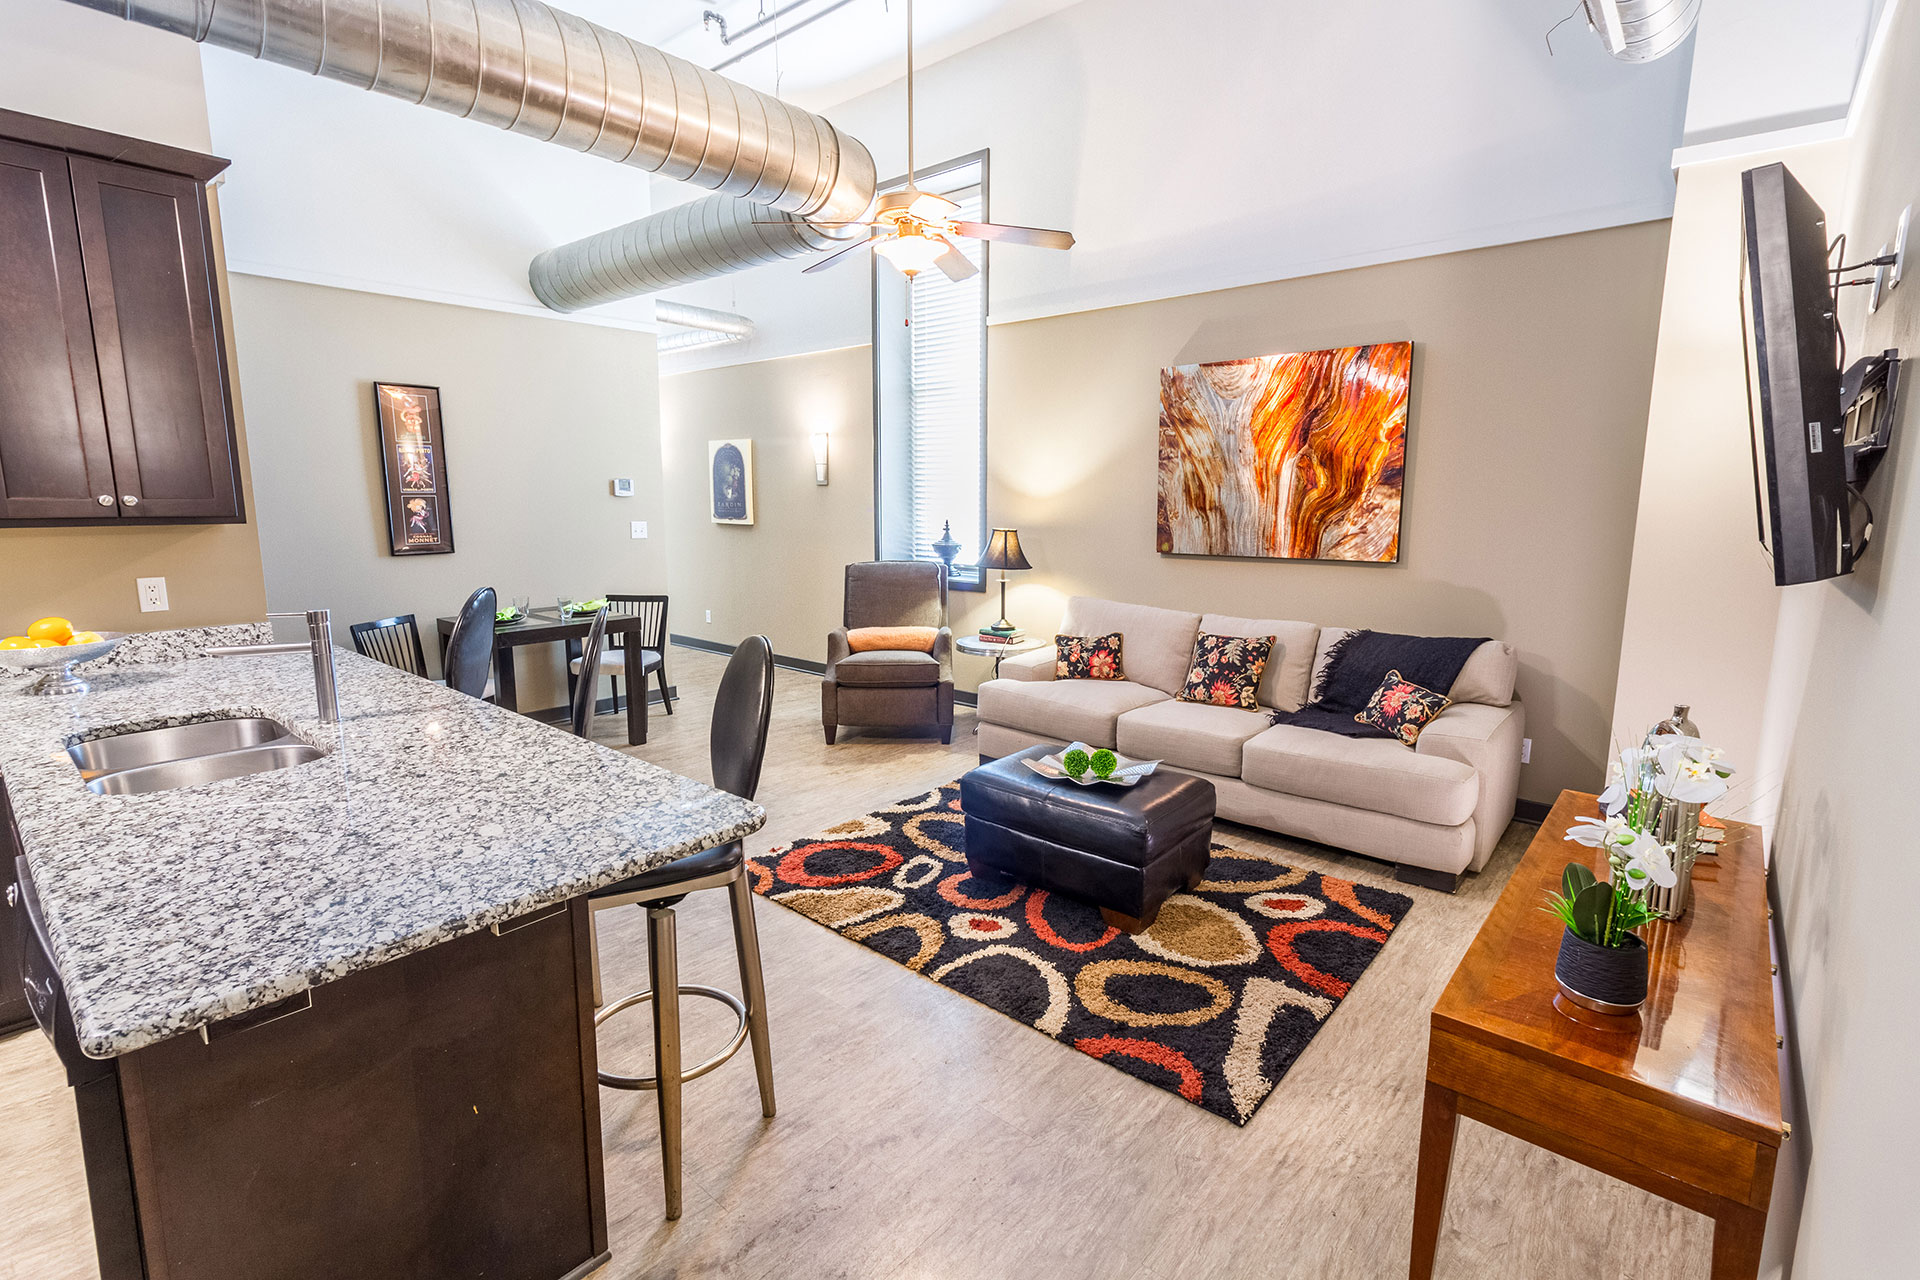 4 Bedroom Apartments for Rent Downtown Columbia MO